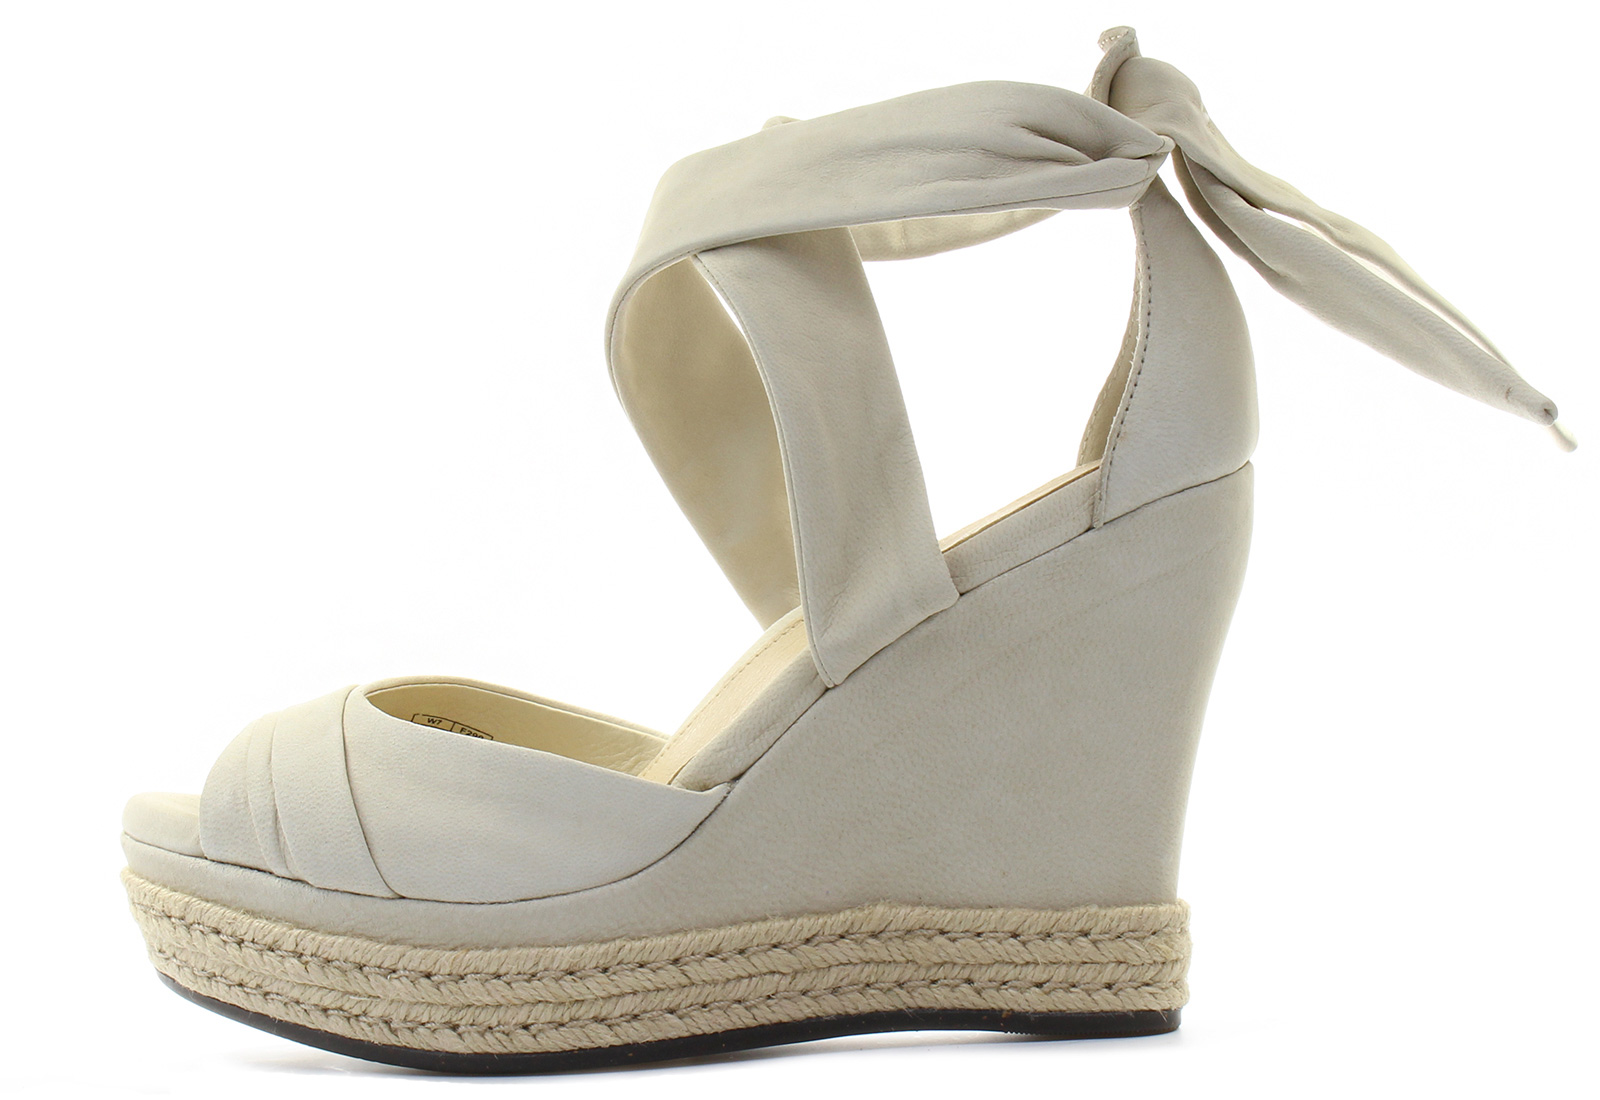 a53e58f1b26 Ugg Sandals - W Lucy - 1004279-nud - Online shop for sneakers, shoes and  boots